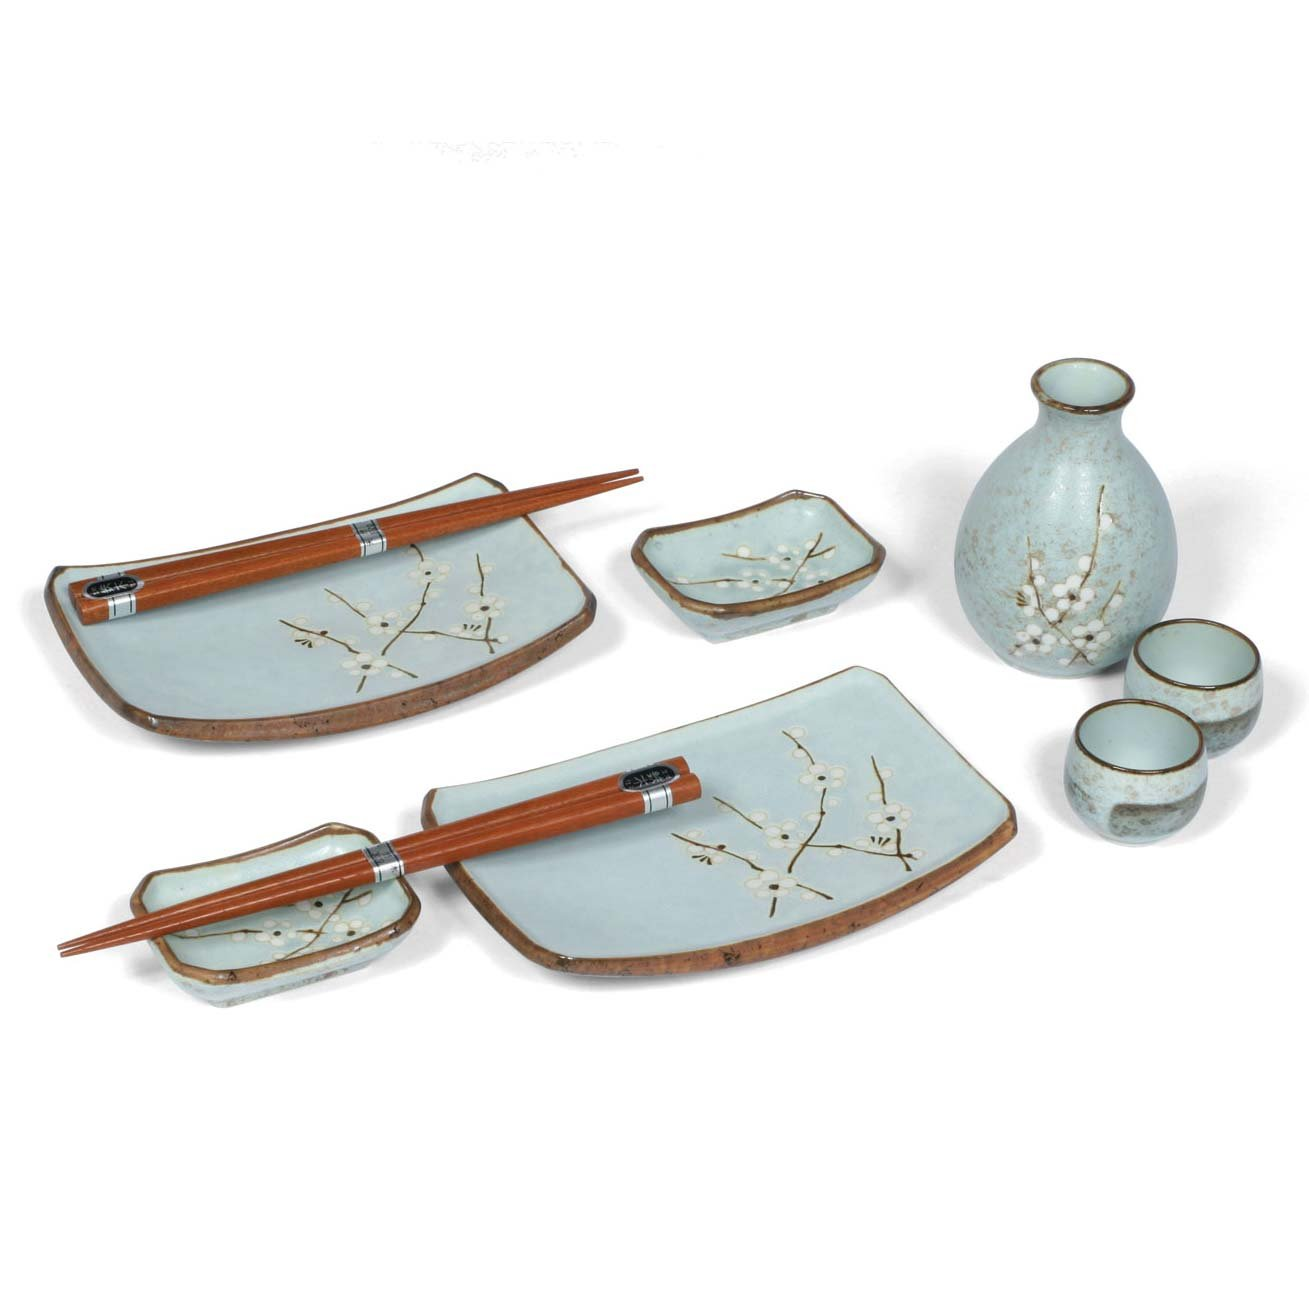 Japanese Sushi And Sake Set For Two for Two with Chopsticks, Spring Blossom MIYA